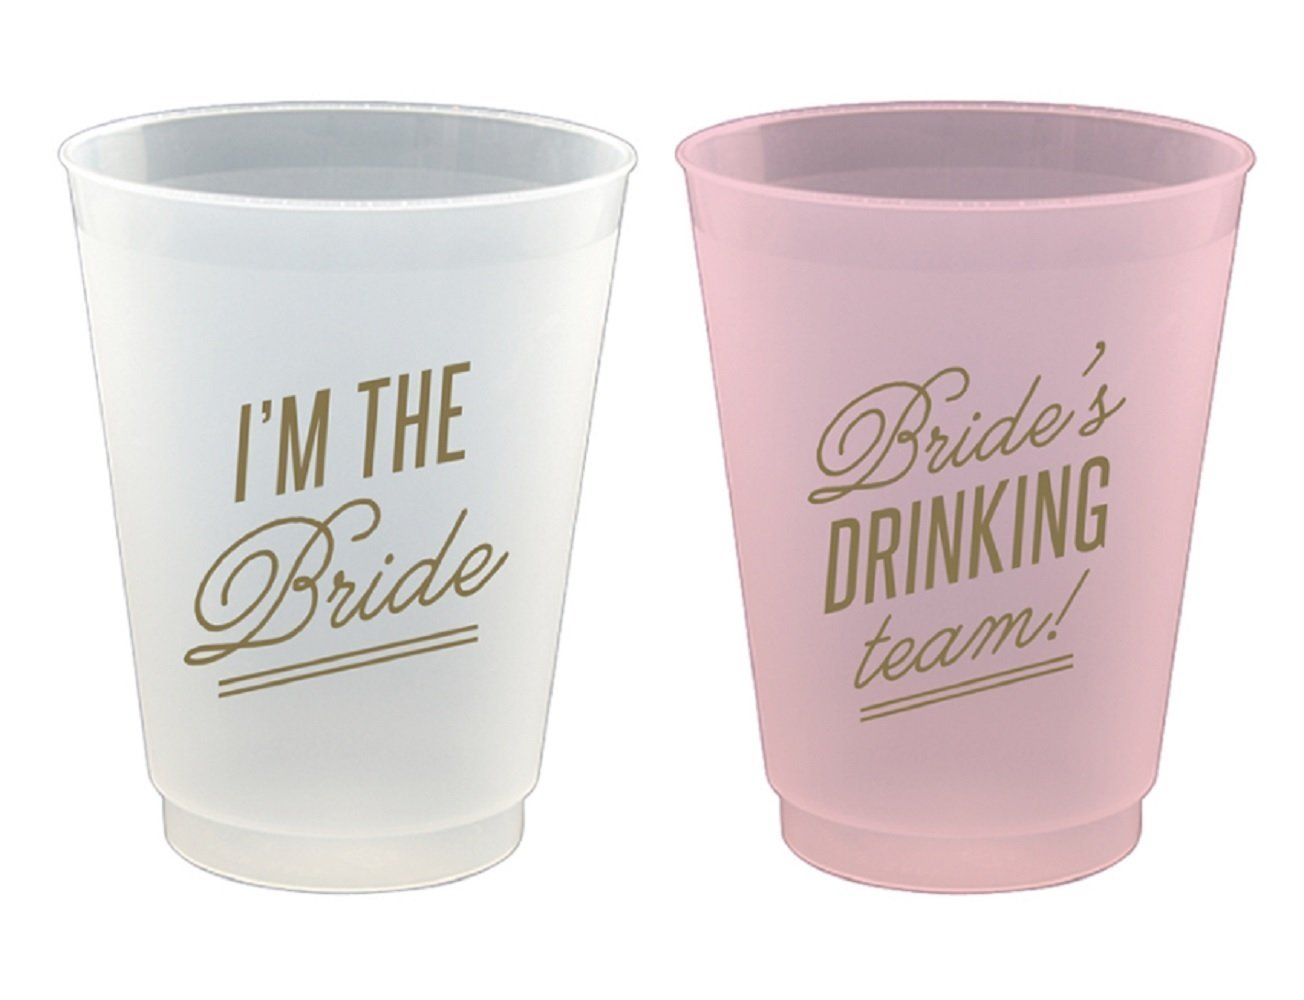 Reusable Frost Flex Cups I'm The Bride & Bride's Drinking Team - 8 Piece Set, 16oz by Slant